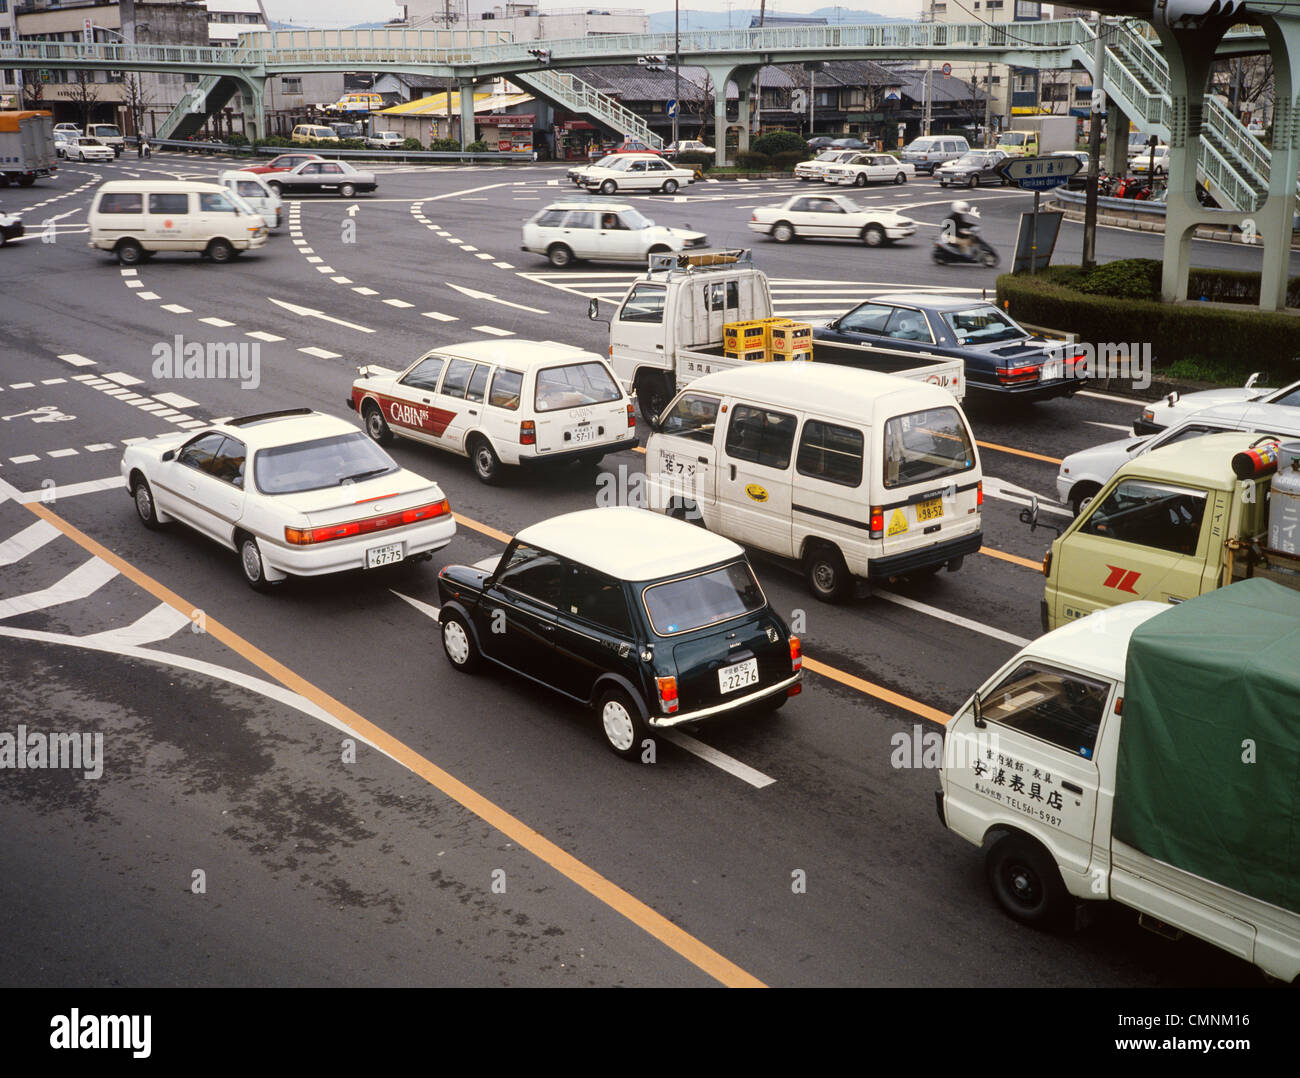 Japan Kyoto Traffic Rover Mini Cooper Stock Photo 47190562 Alamy